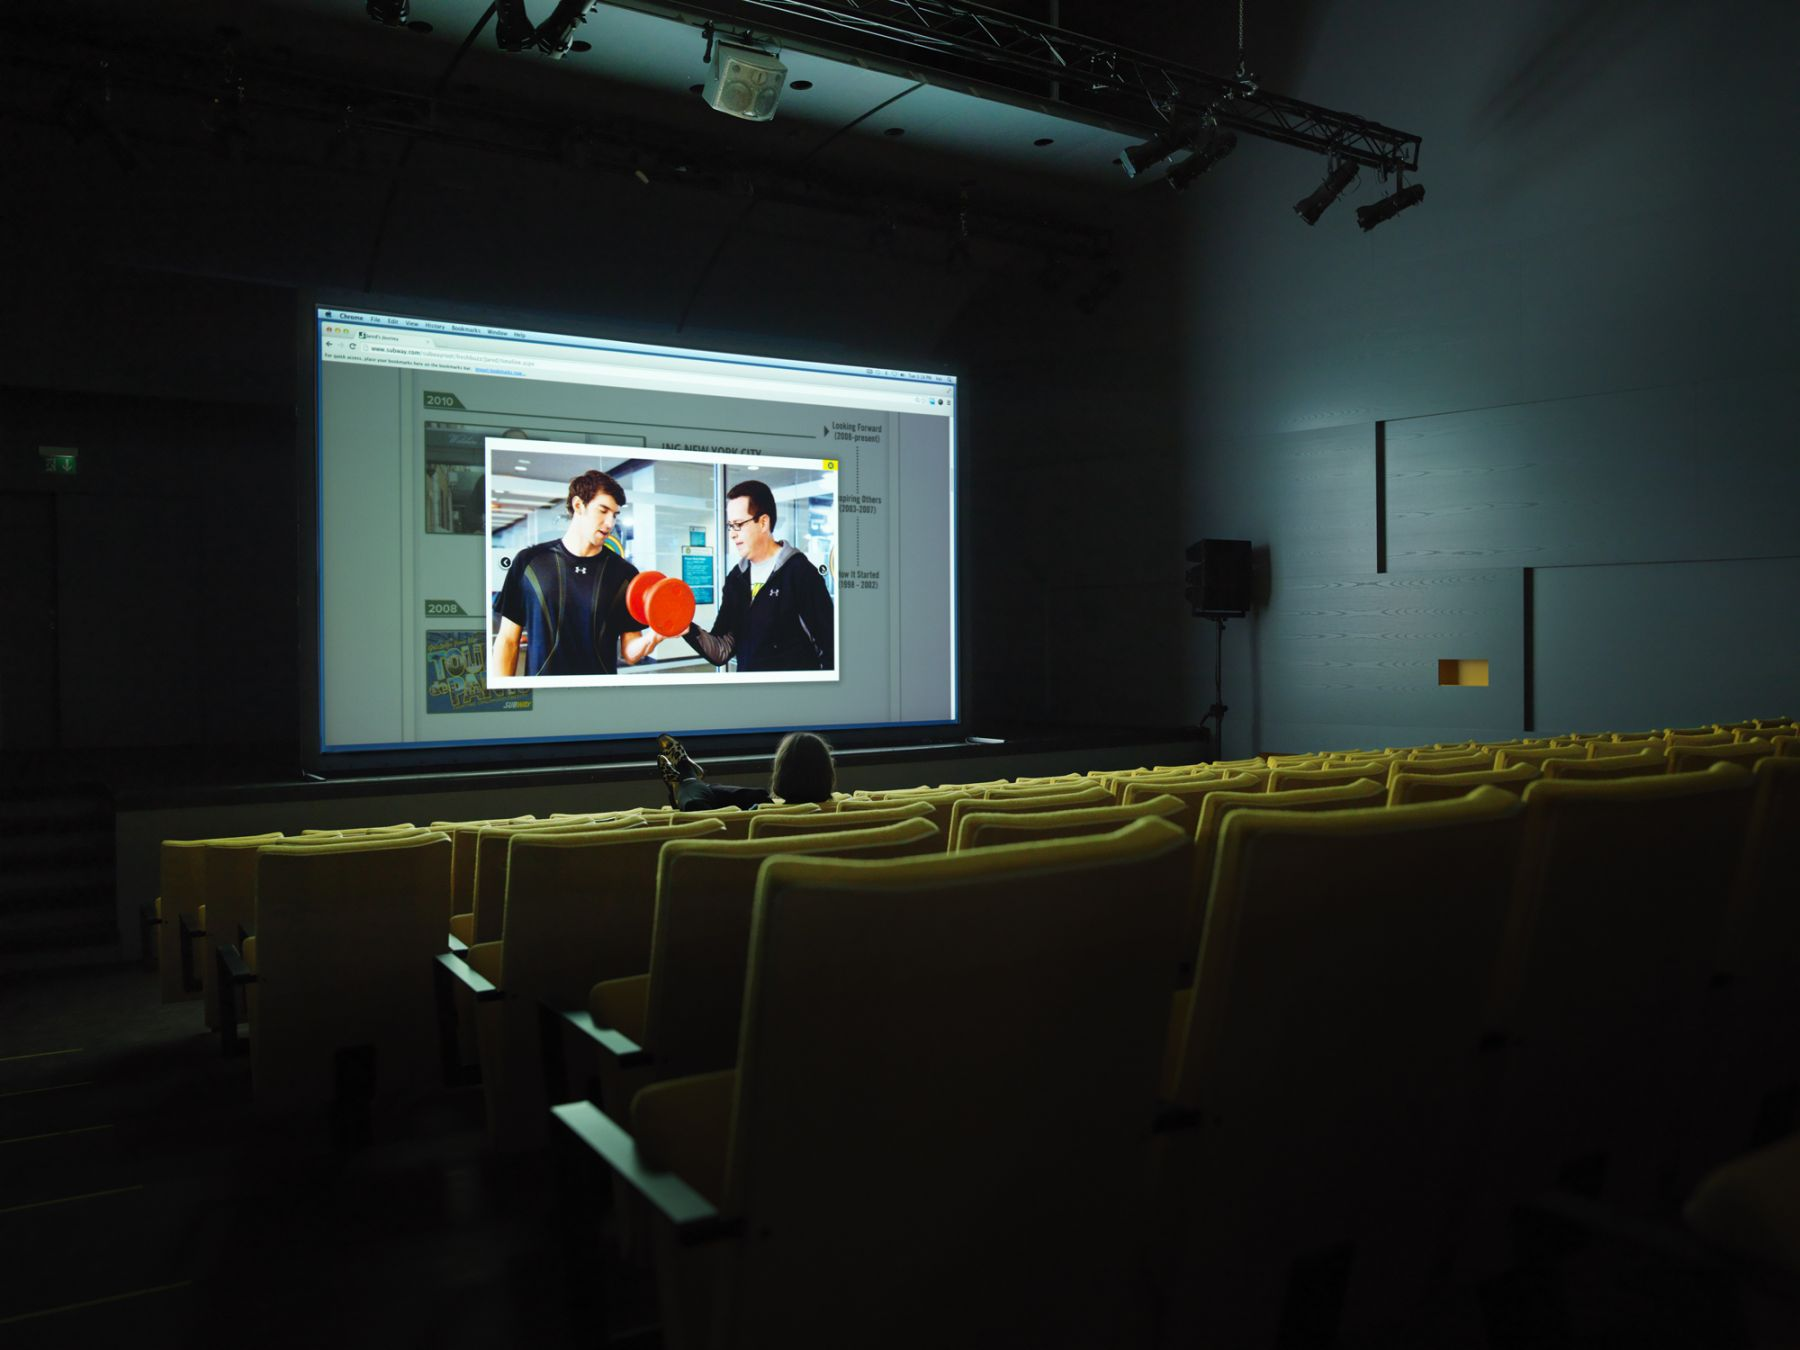 Cory Arcangel, Installation view,All The Small Things, Herning Museum of Contemporary Art, Herning, 2014